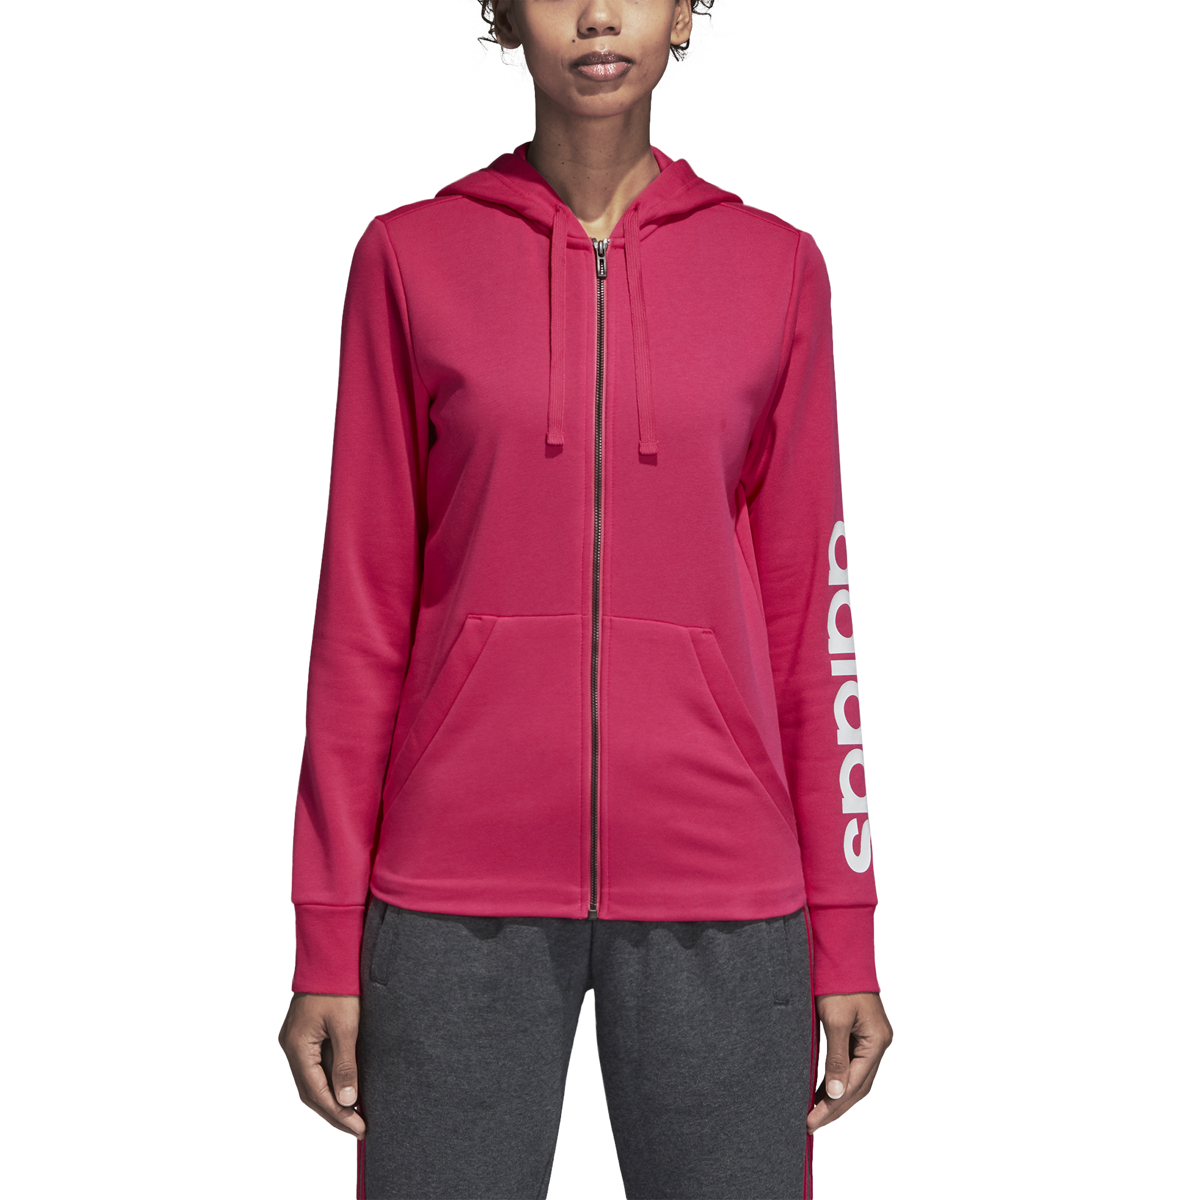 the best attitude 91d90 99217 Details about Womens Adidas Essentials Linear Full Zip Hoodie Real  MagentaWhite